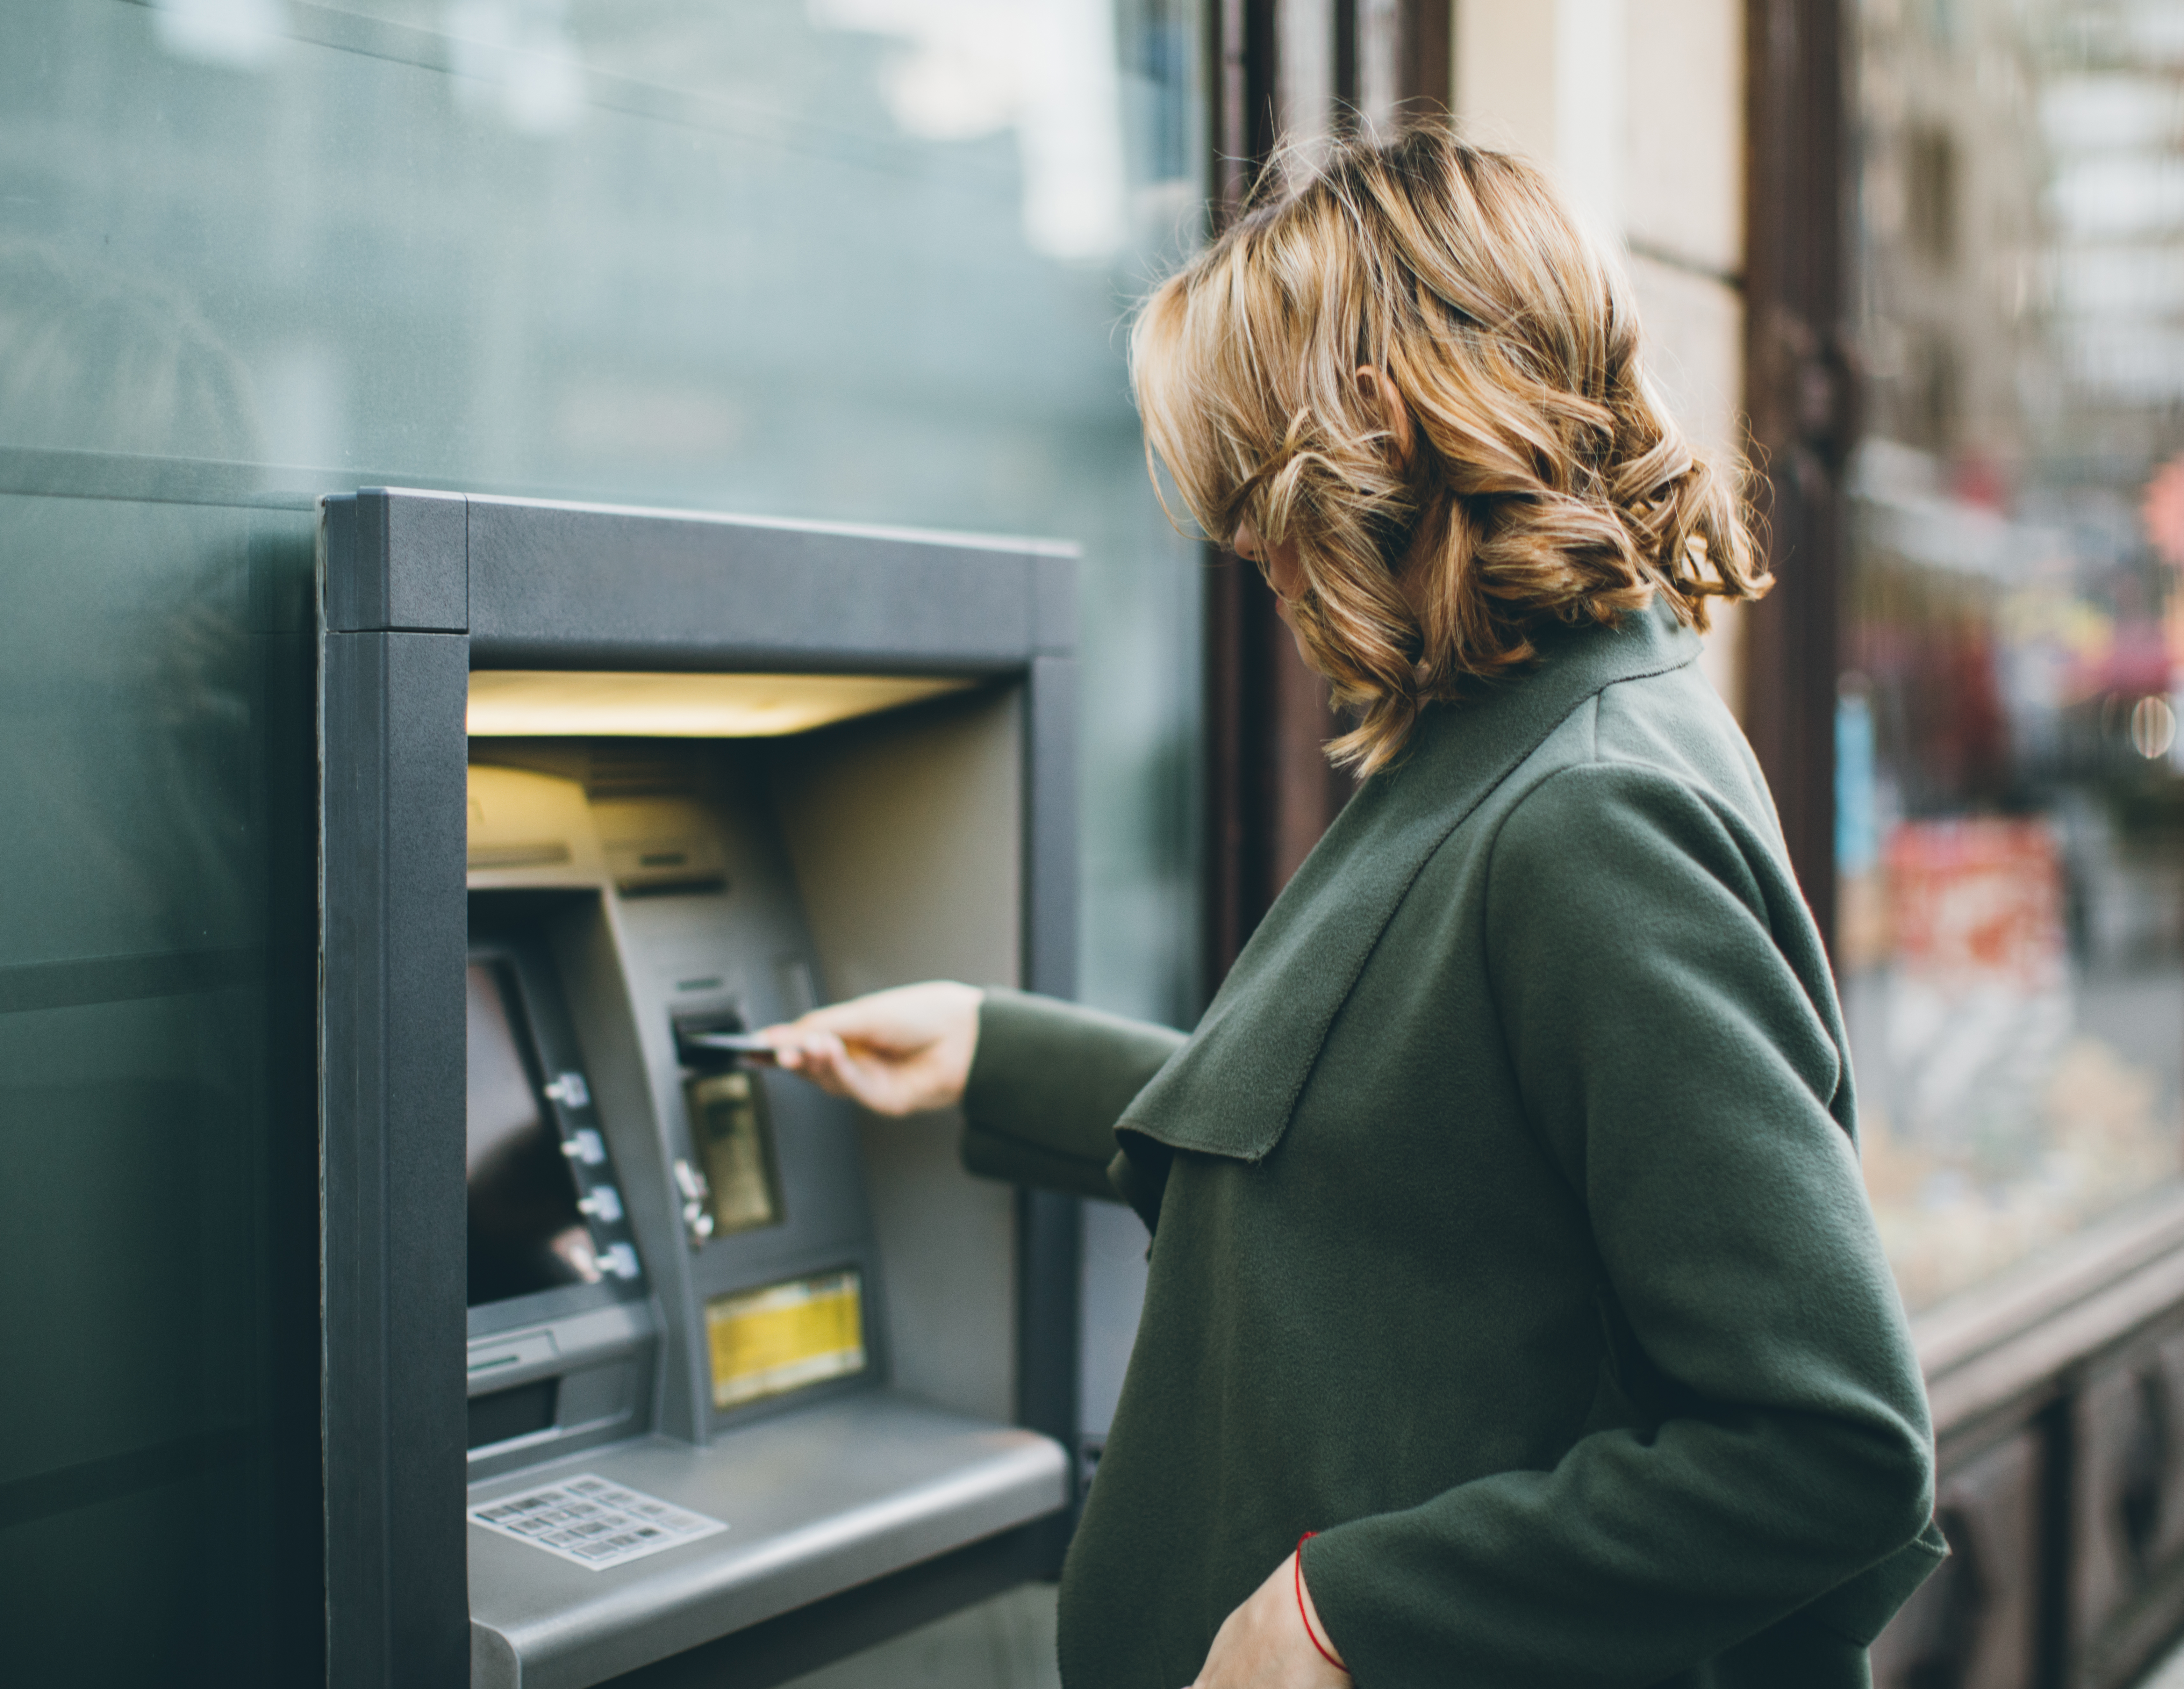 How to Deposit Cash in an ATM - NerdWallet